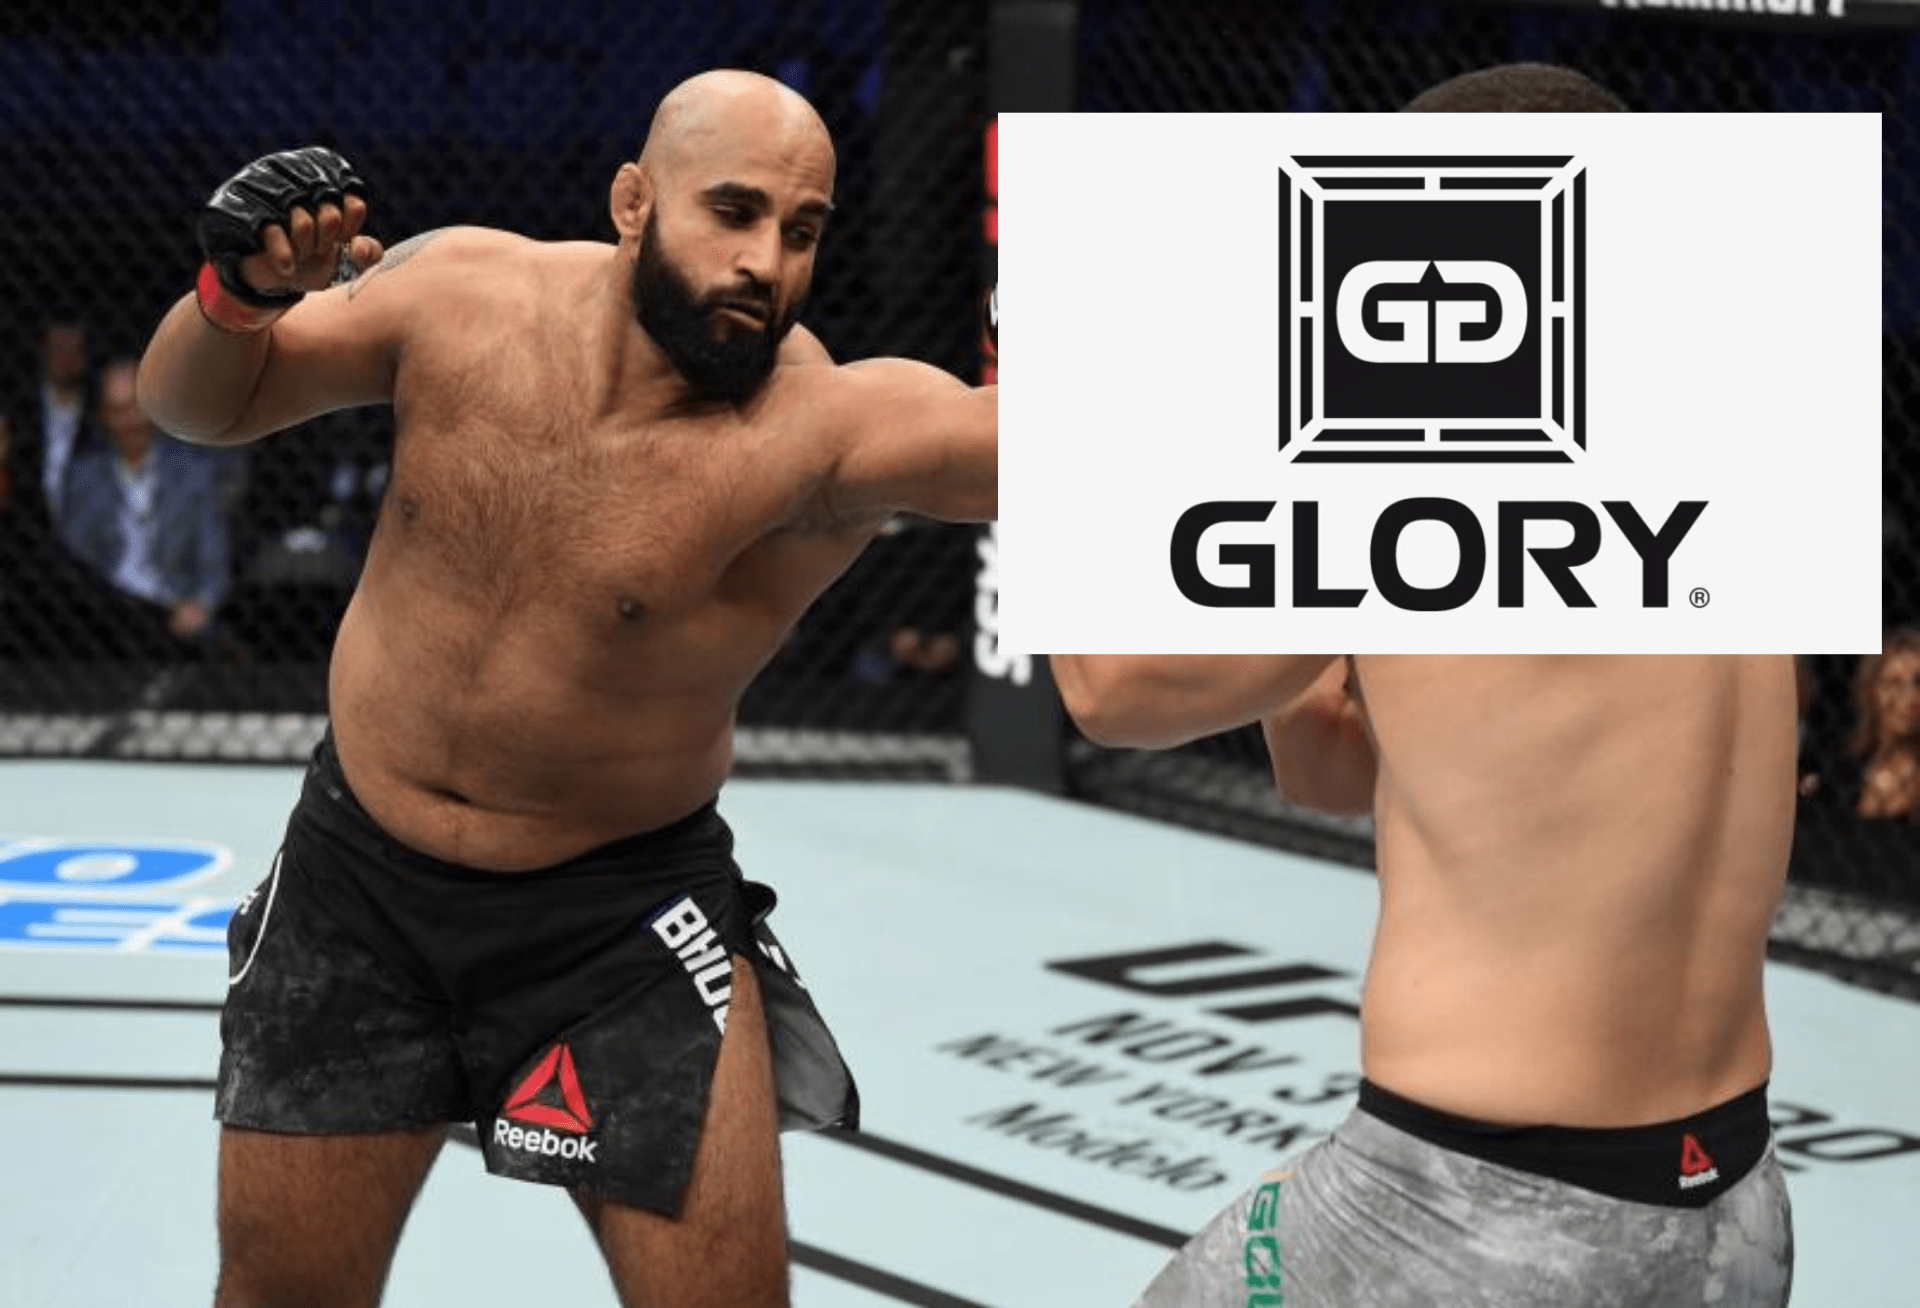 Arjan Bhullar tries to recruit out of work Glory kickboxers to ONE Championship - GLORY